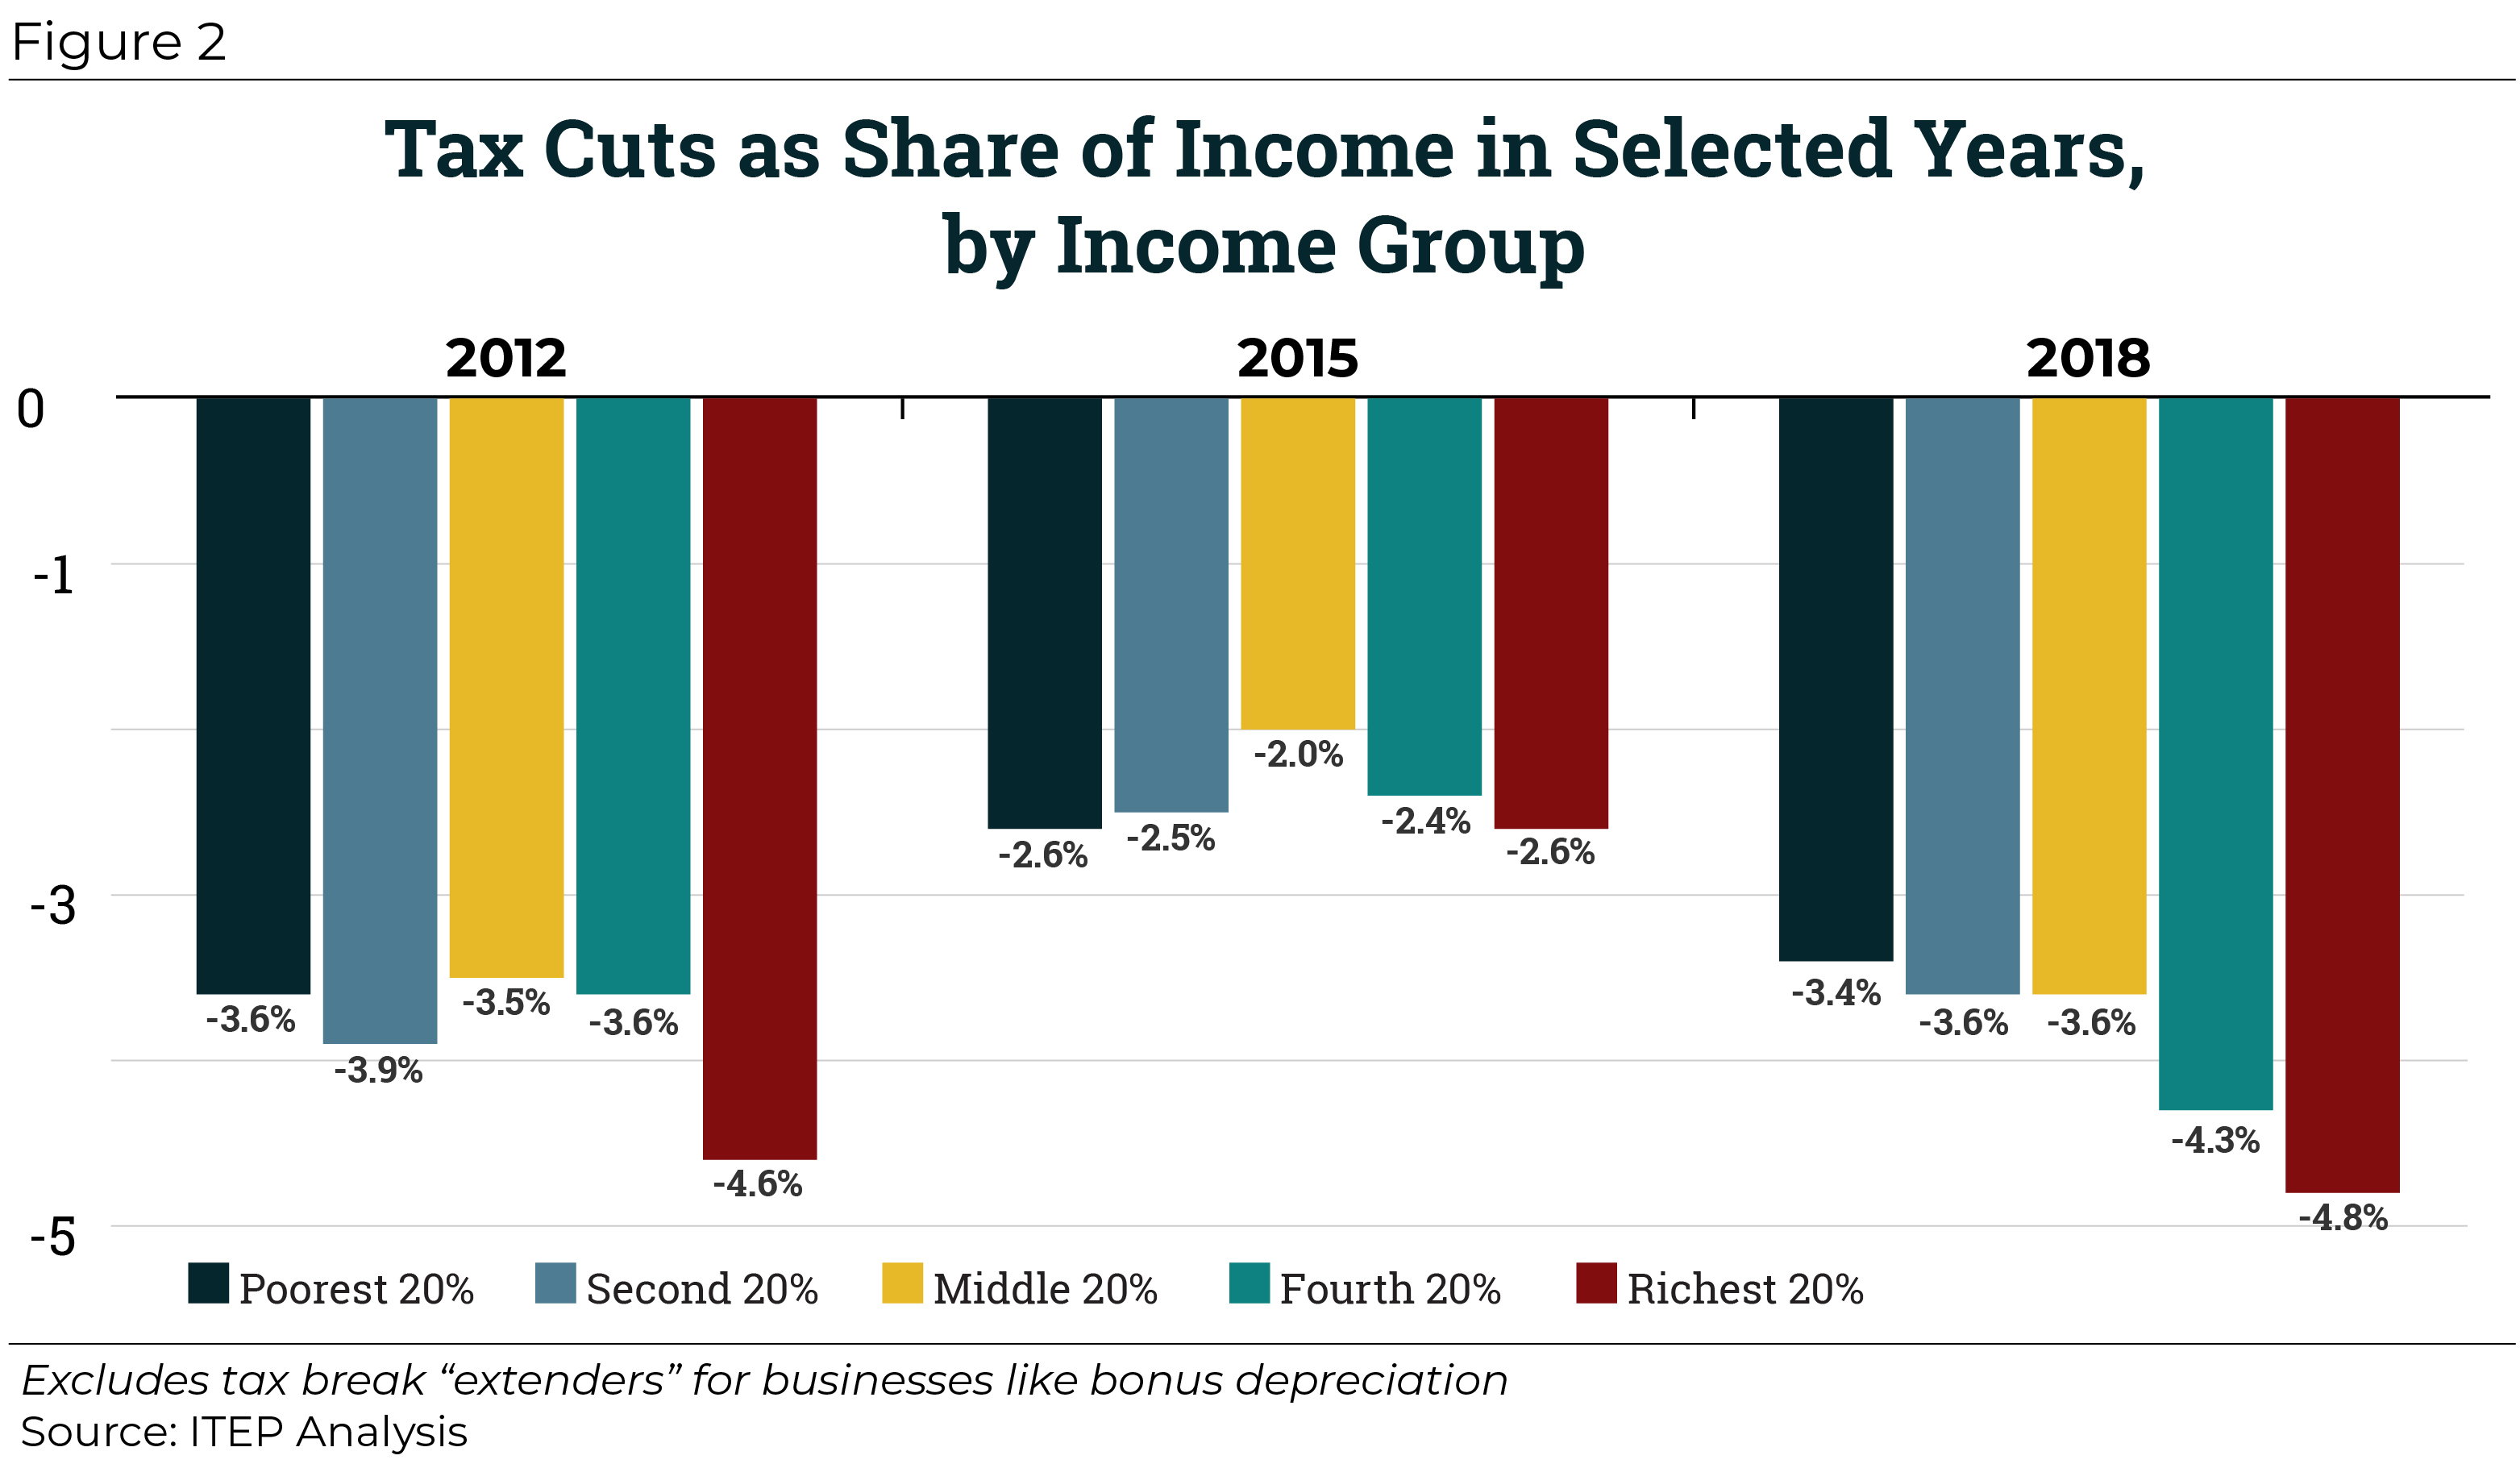 Wealthy Benefit Most From Decades of Tax Cuts